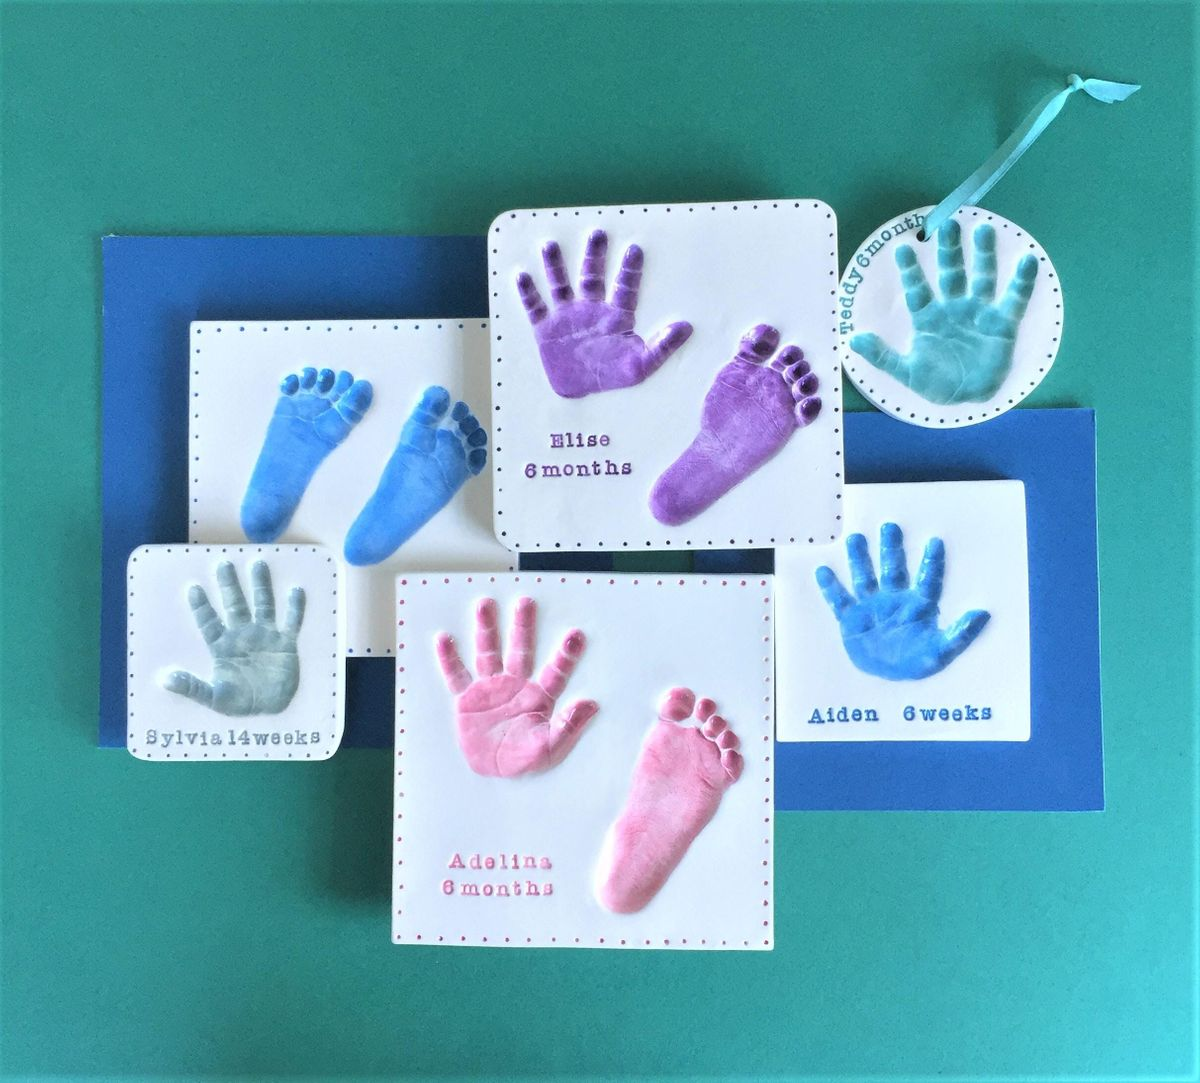 Baby clay imprint session BS16 (20 for single 35 for double)